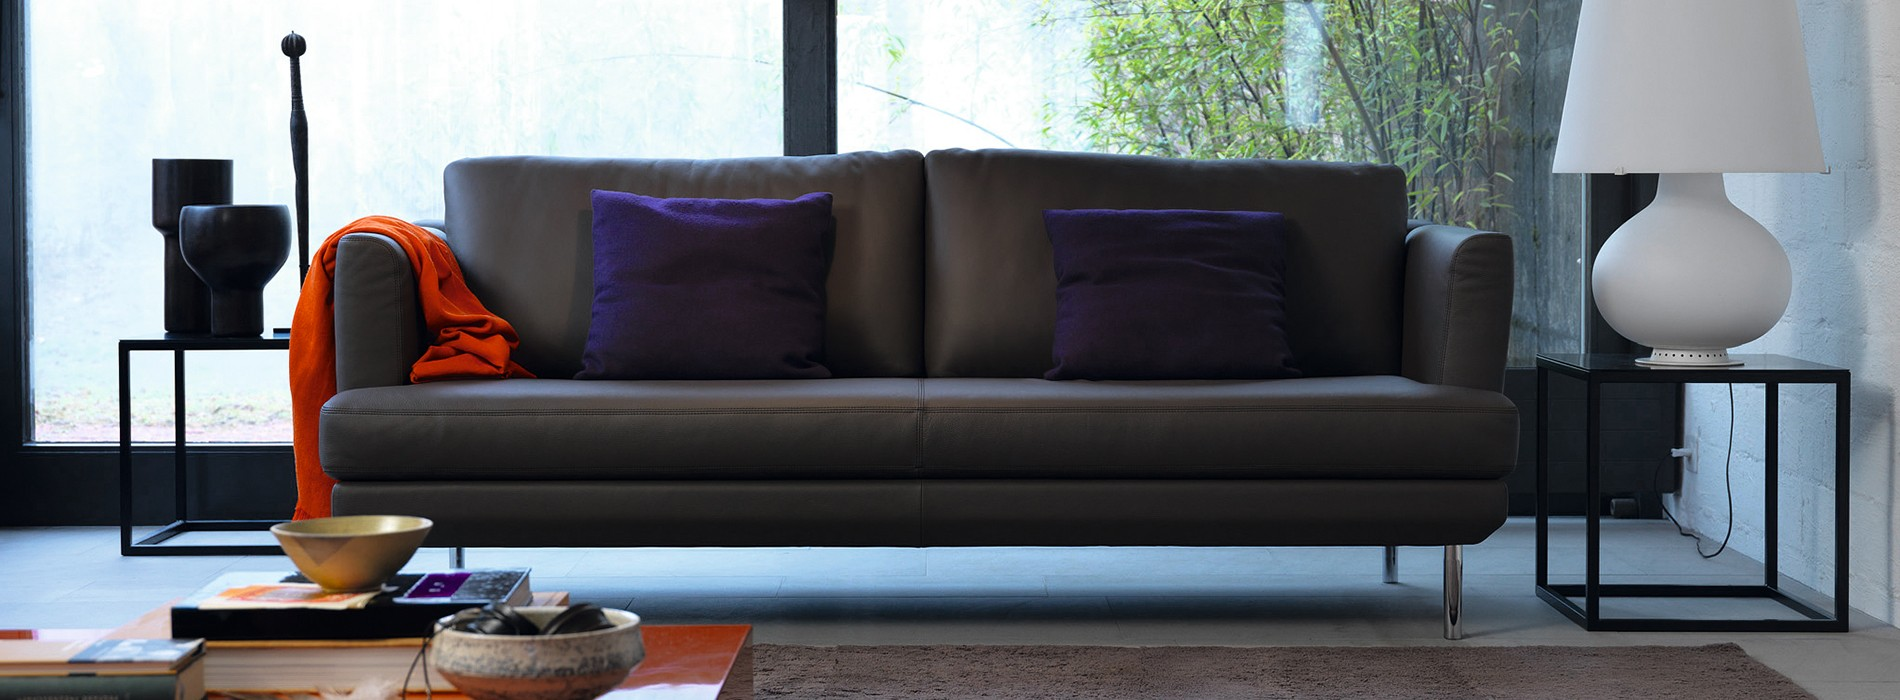 Intertime LIV